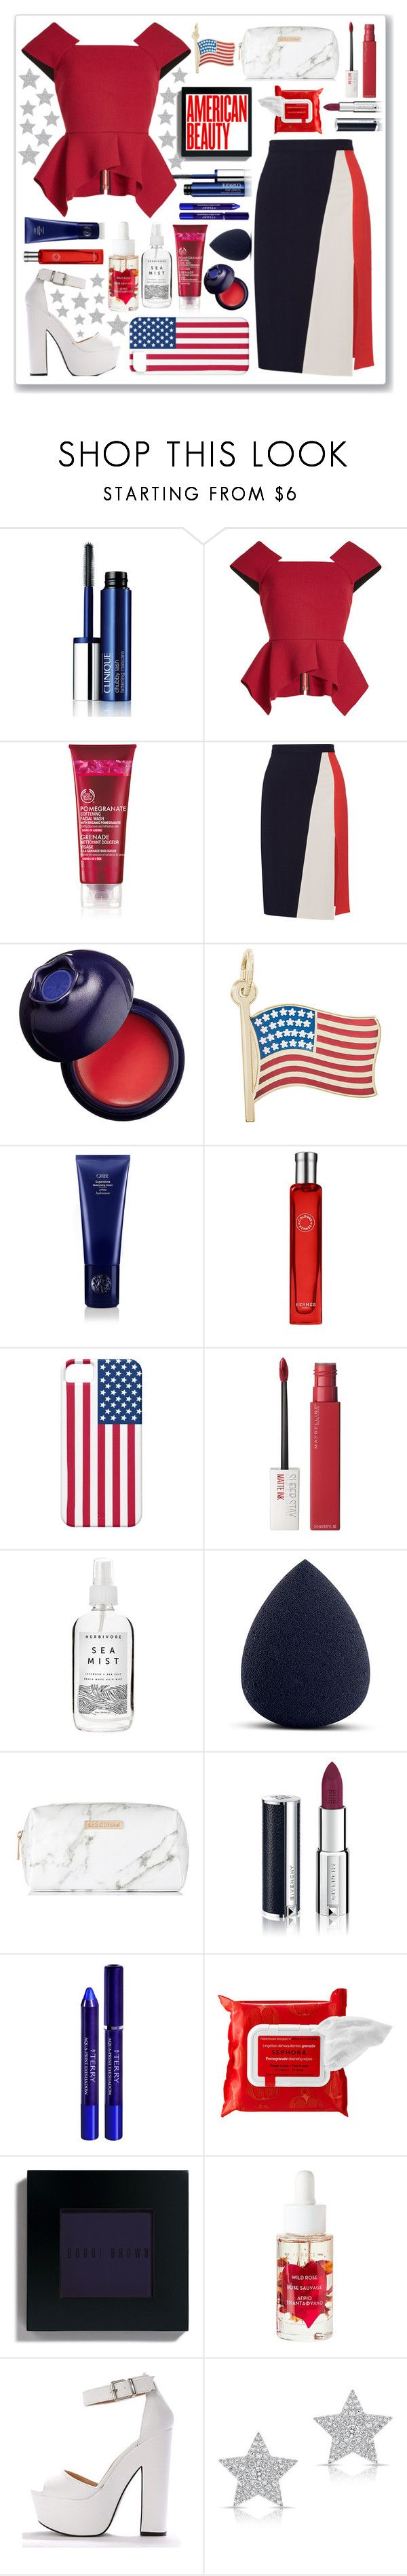 """""""American Beauty"""" by anadlangel ❤ liked on Polyvore featuring Clinique, Roland Mouret, Tanya Taylor, Charlotte Russe, Rembrandt Charms, Oribe, Hermès, Maybelline, Herbivore and My Makeup Brush Set"""